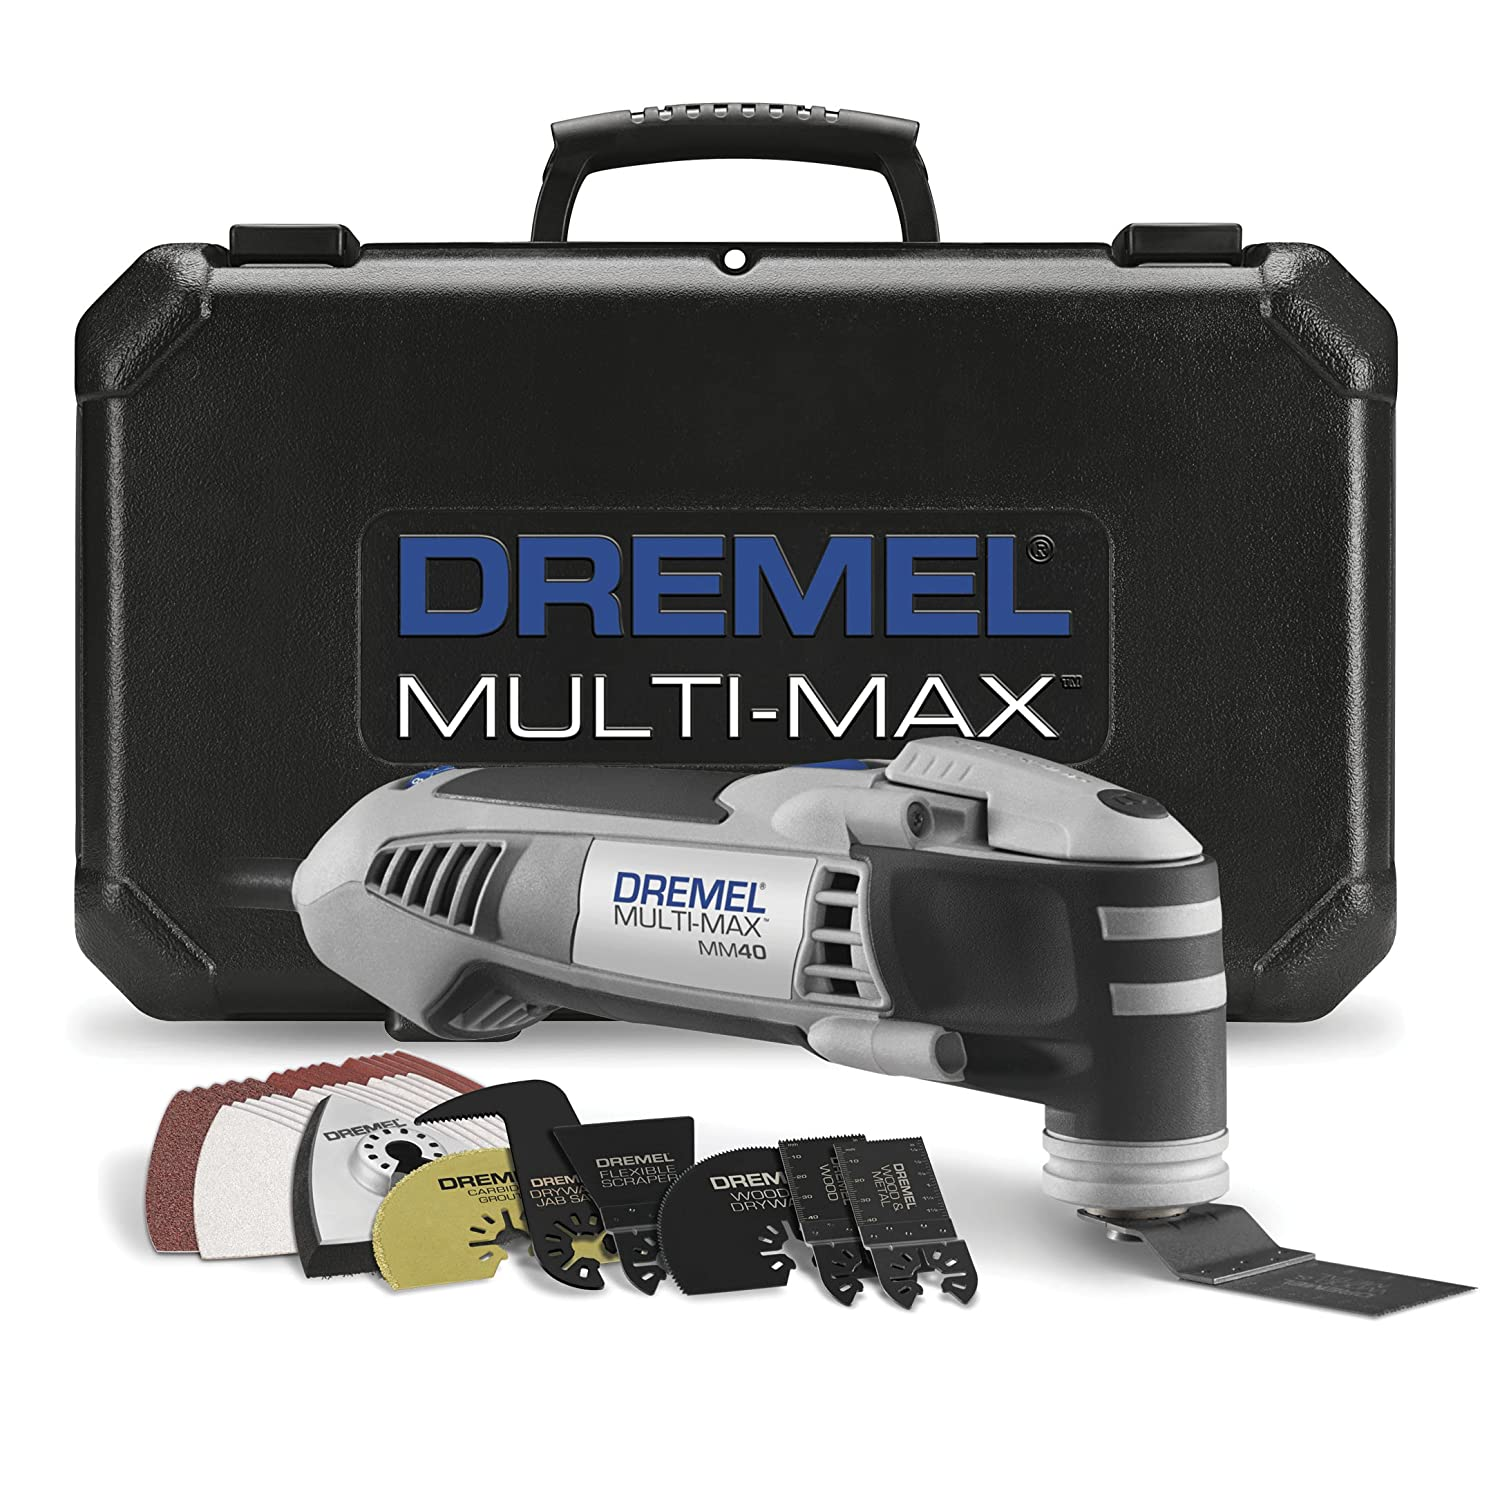 Dremel MM40-05 Multi-Max 3.8-Amp